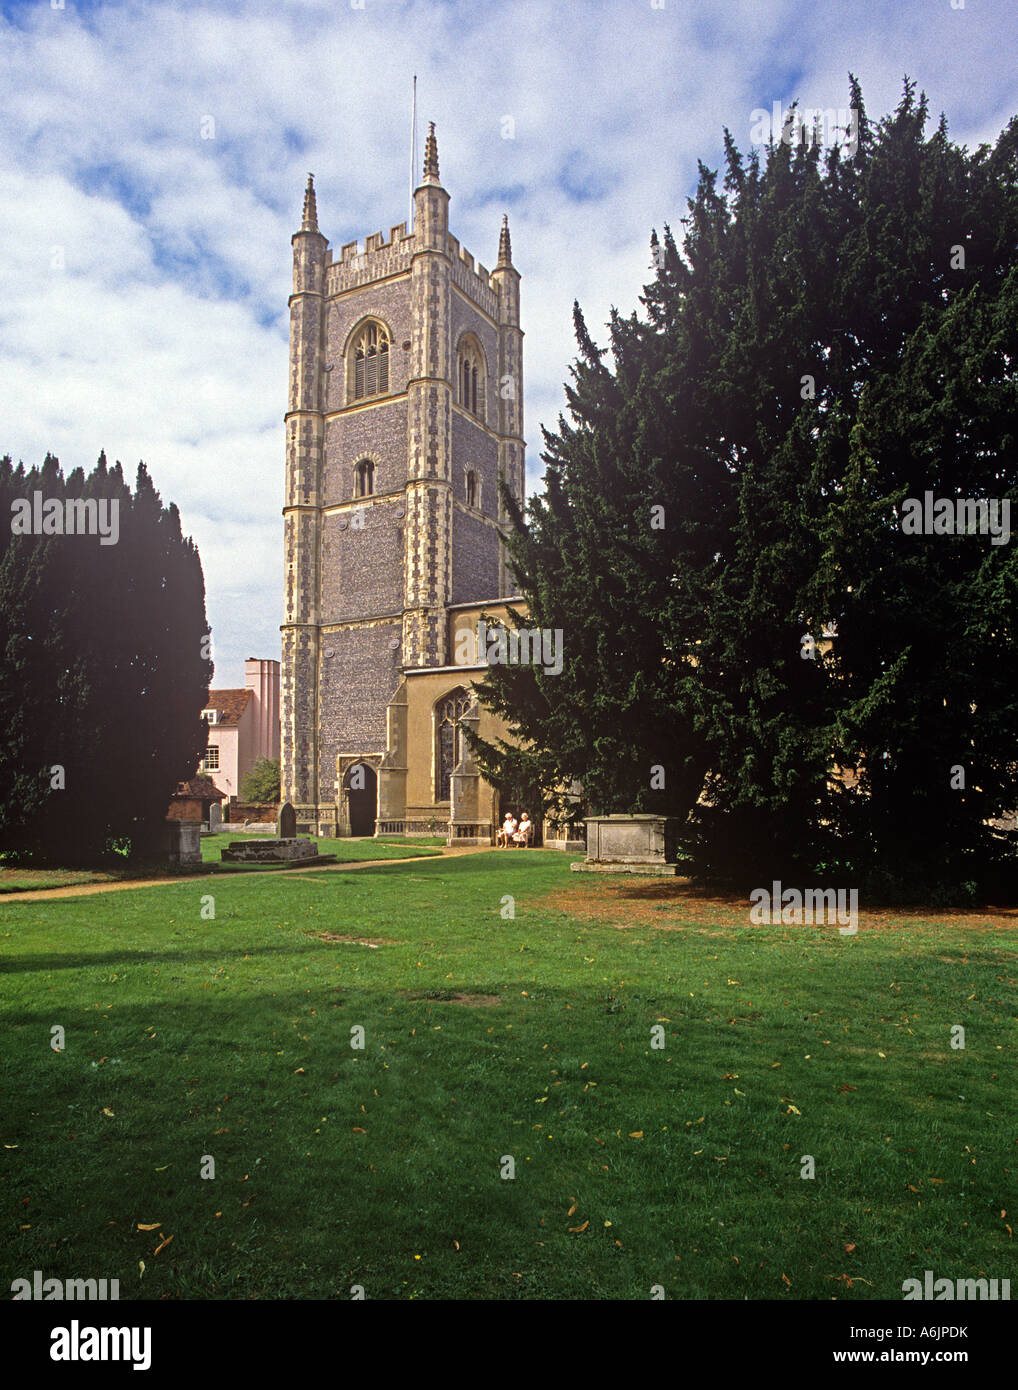 The Pinnacled tower of the Church of St Mary in Dedham appears in many of the paintings of John Constable - Stock Image